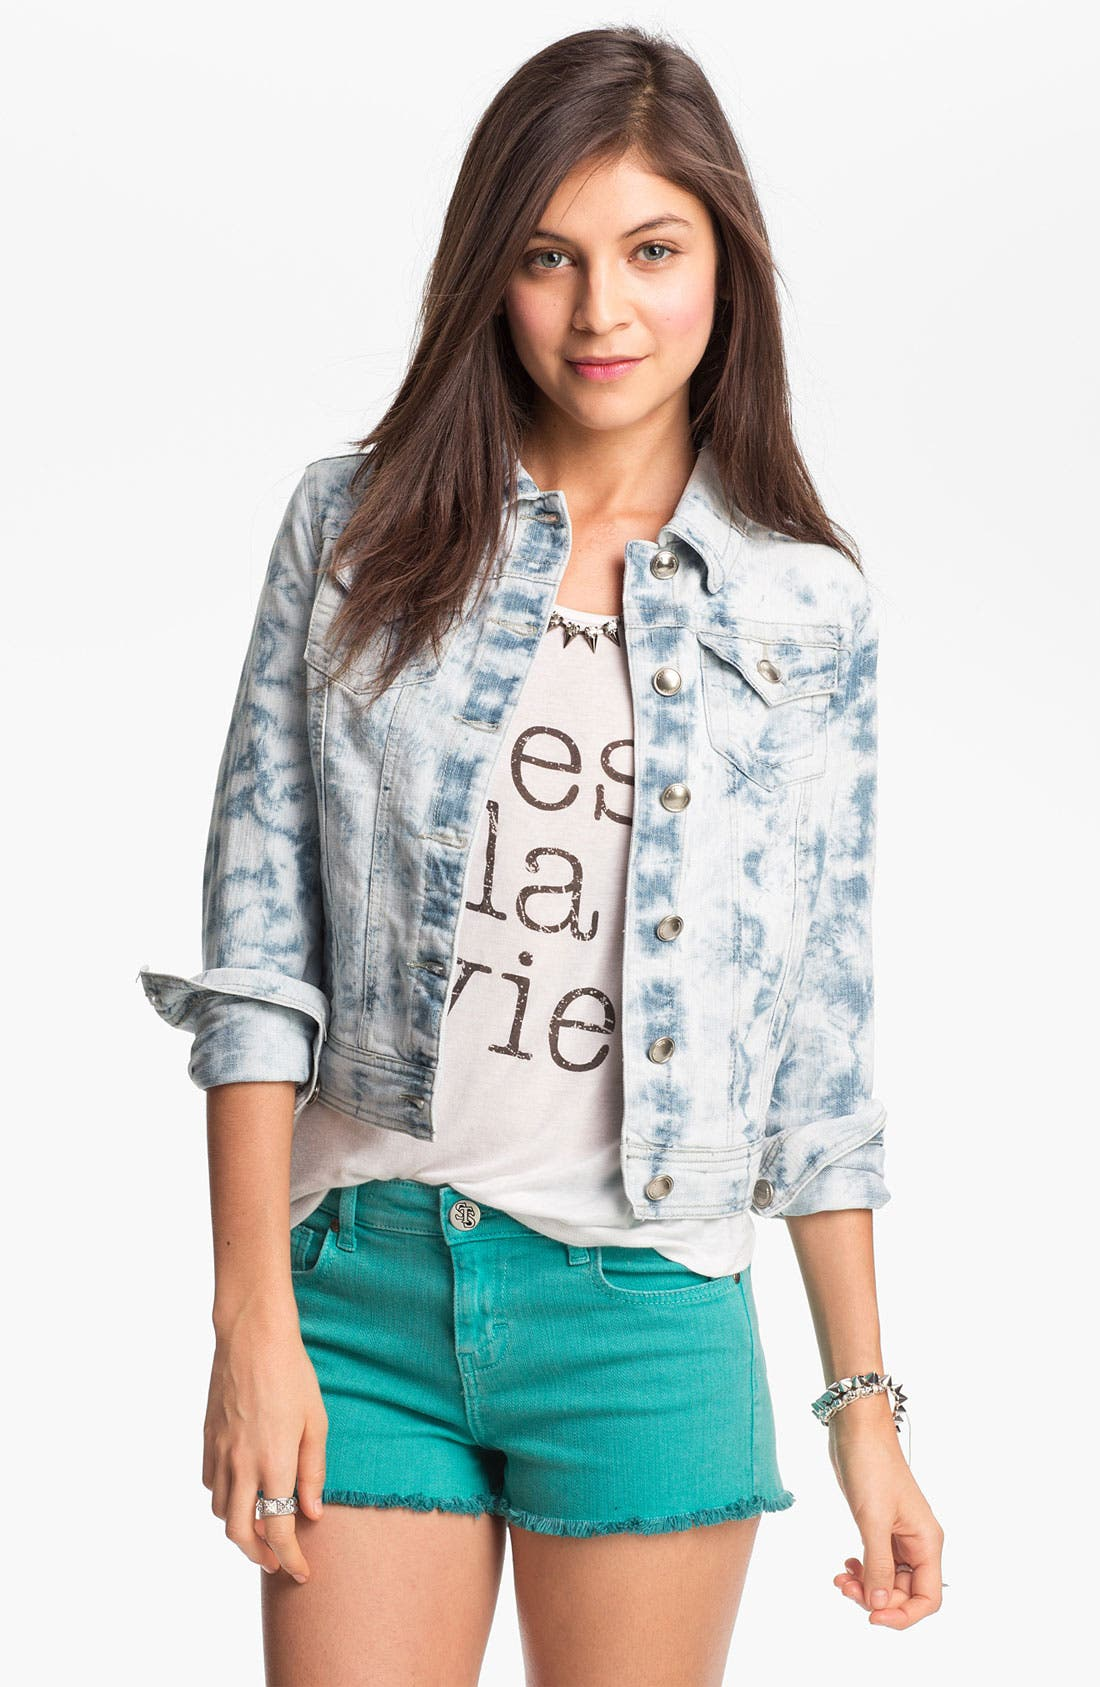 Alternate Image 1 Selected - Jou Jou Acid Wash Denim Jacket (Juniors)